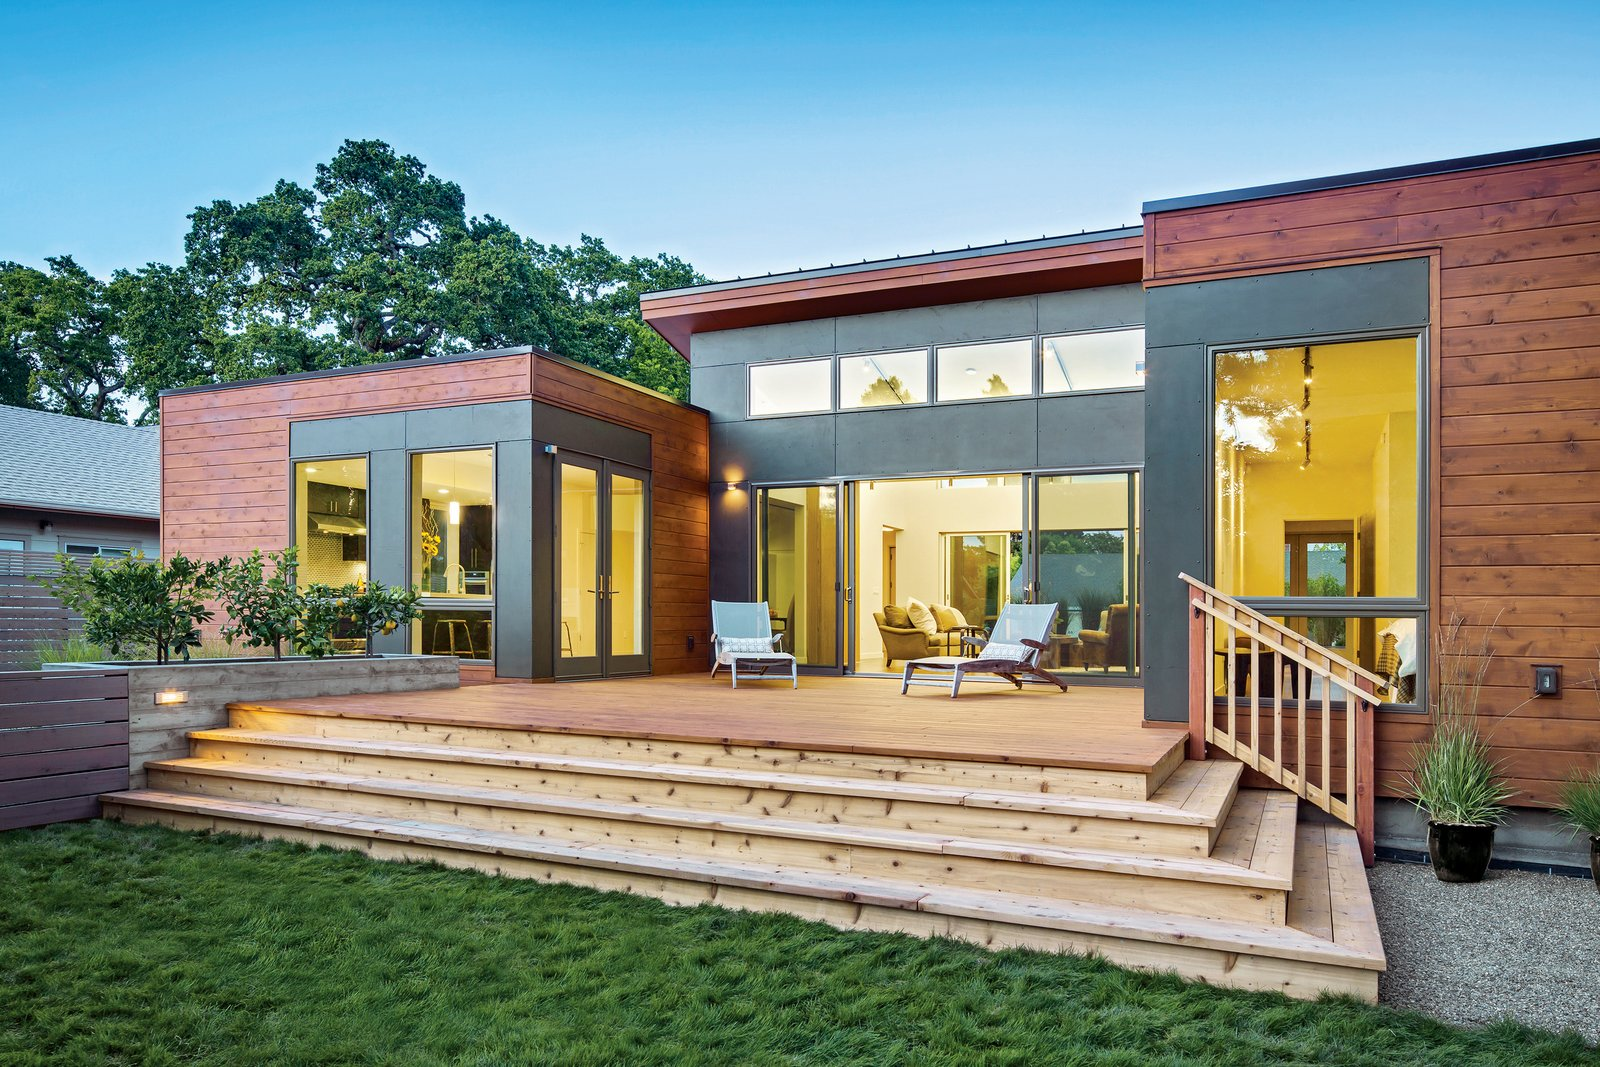 """Blu Homes cofounder Bill Haney considers his company's mission to be twofold: """"Prefab 2.0 means using technology to serve customers more efficiently and provide the highest possible customer service.""""  Photo 1 of 1 in Prefab Builder Blu Homes to Disrupt the Construction Industry"""